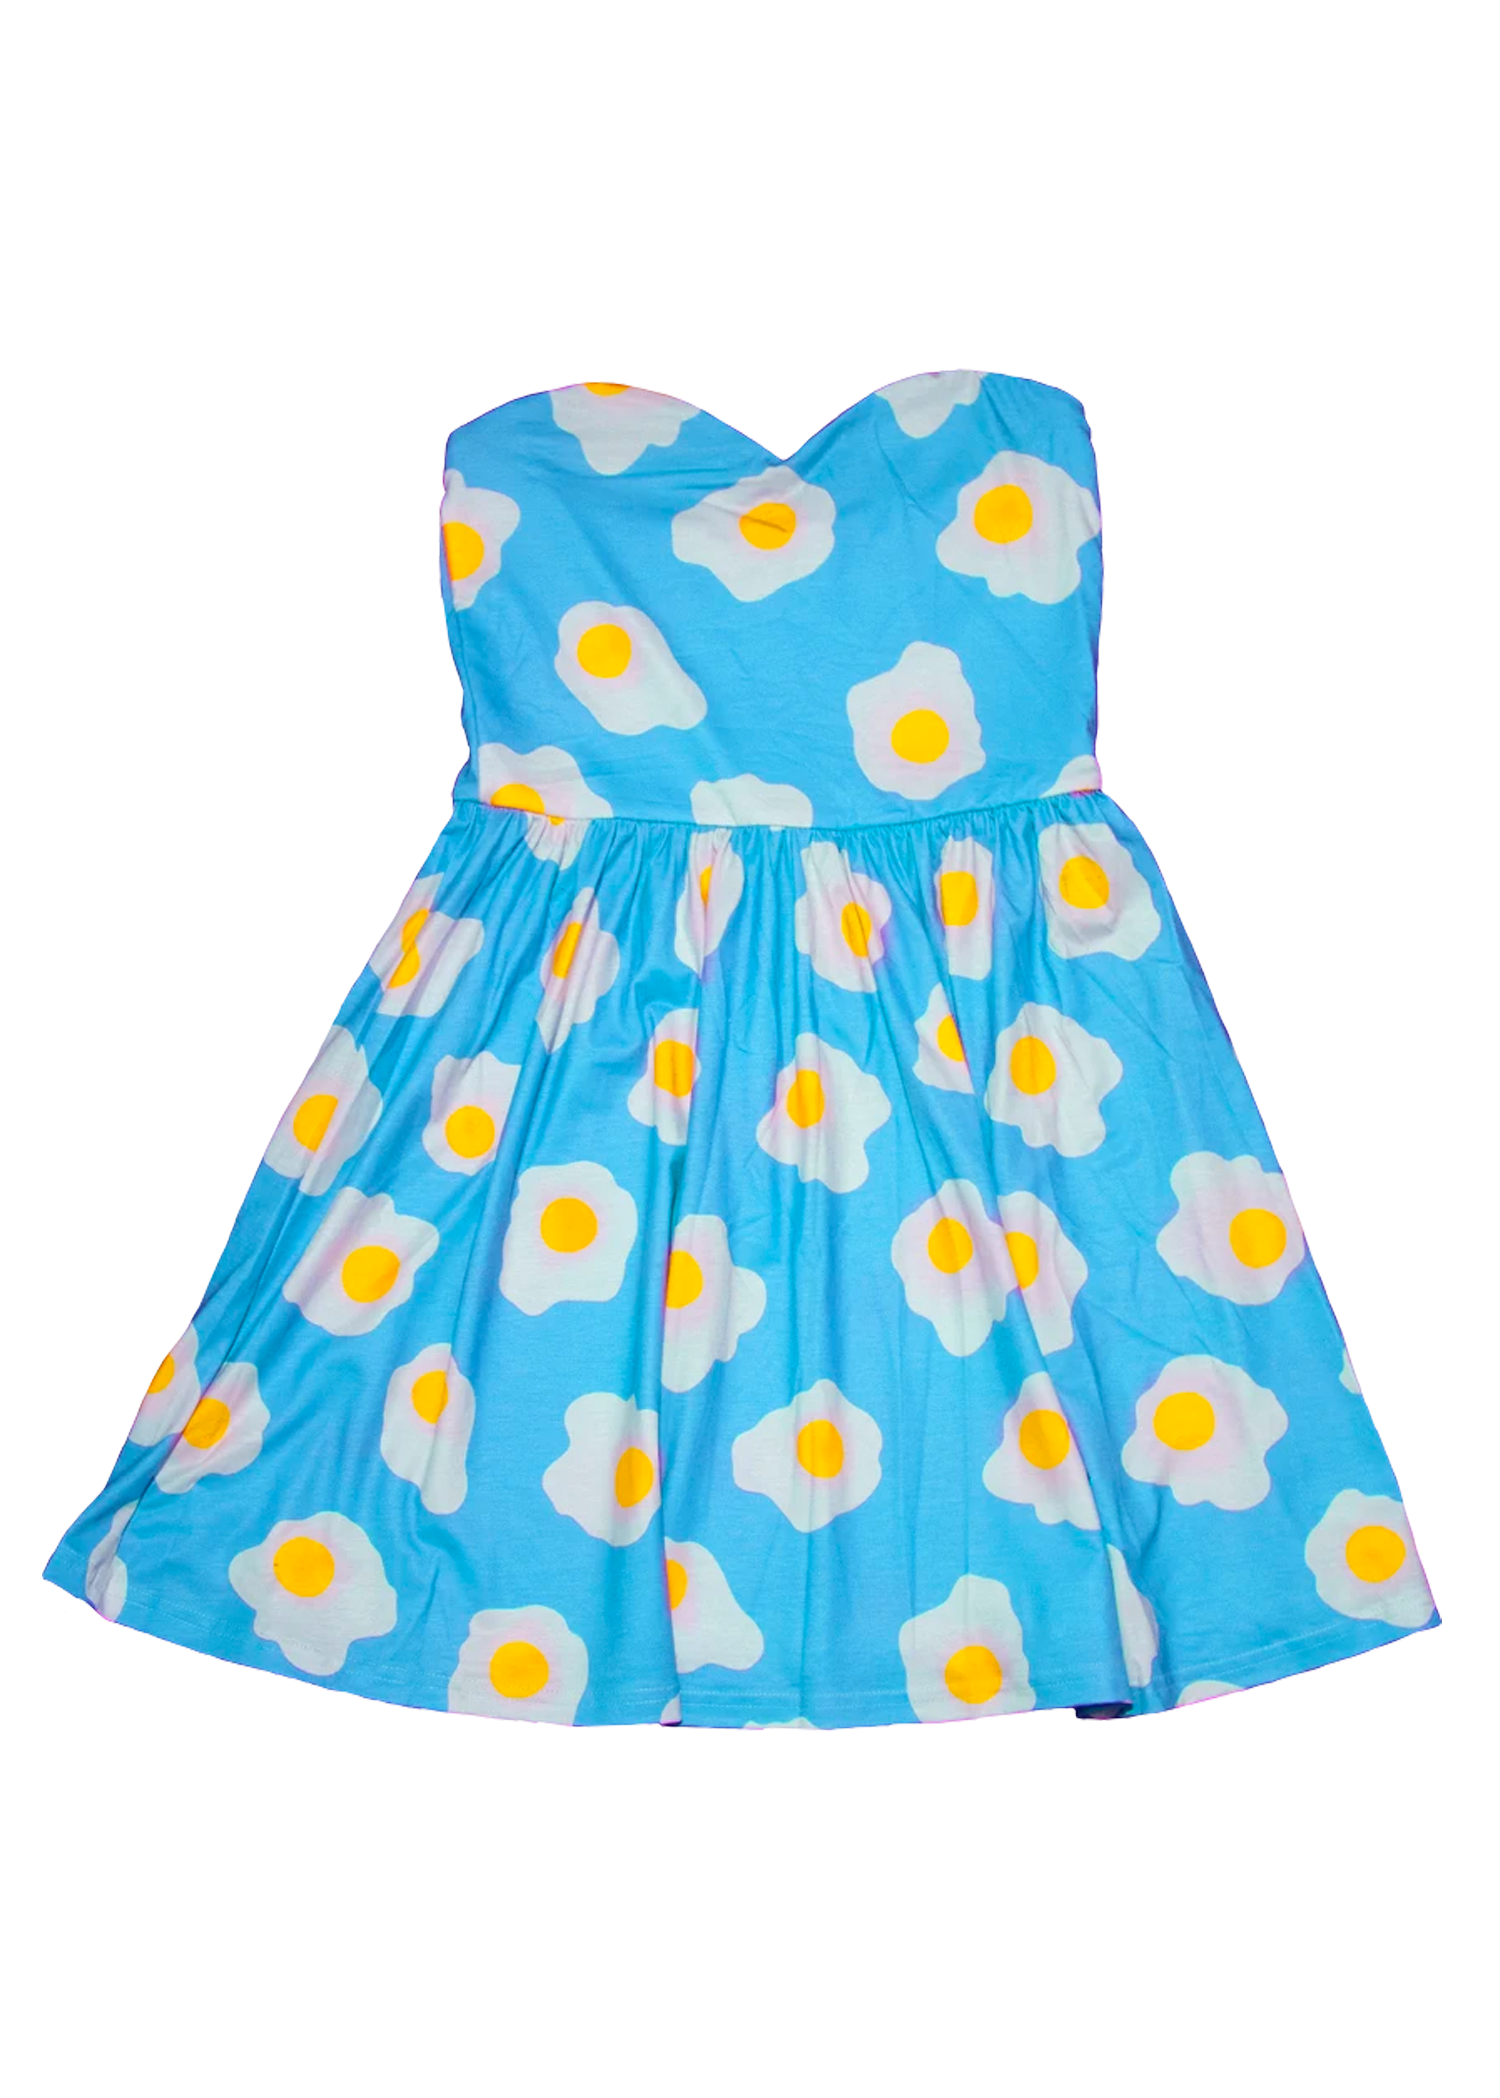 Sunny-Side Up Mini Dress in Pastel Blue